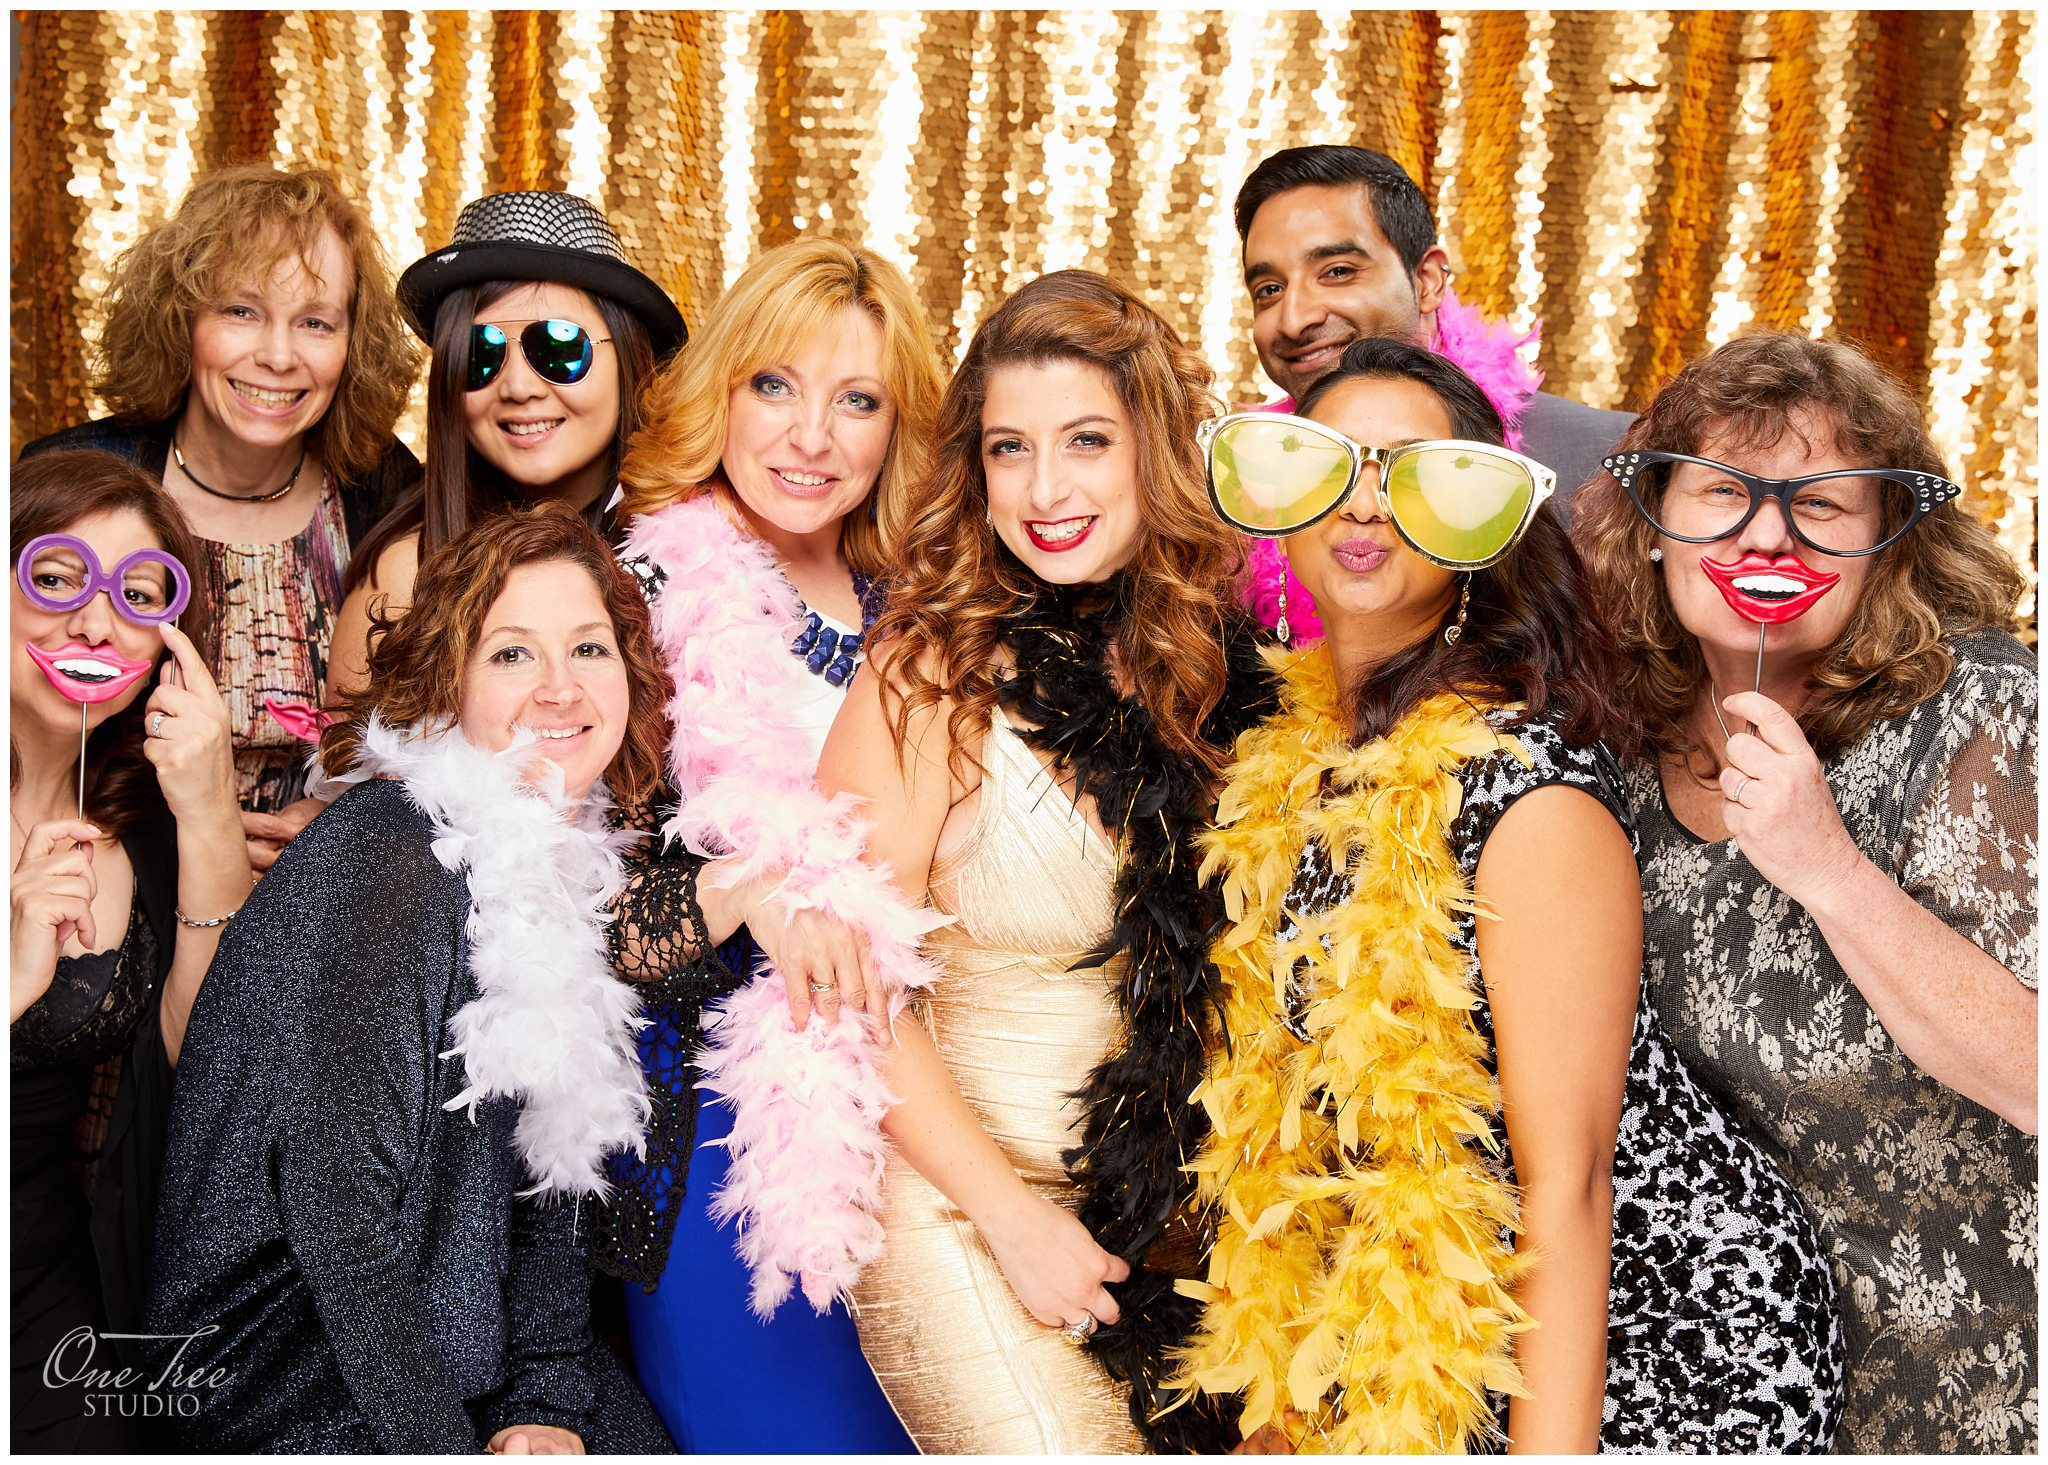 Event Portraits Photo Booth by Photographers | One Tree Studio